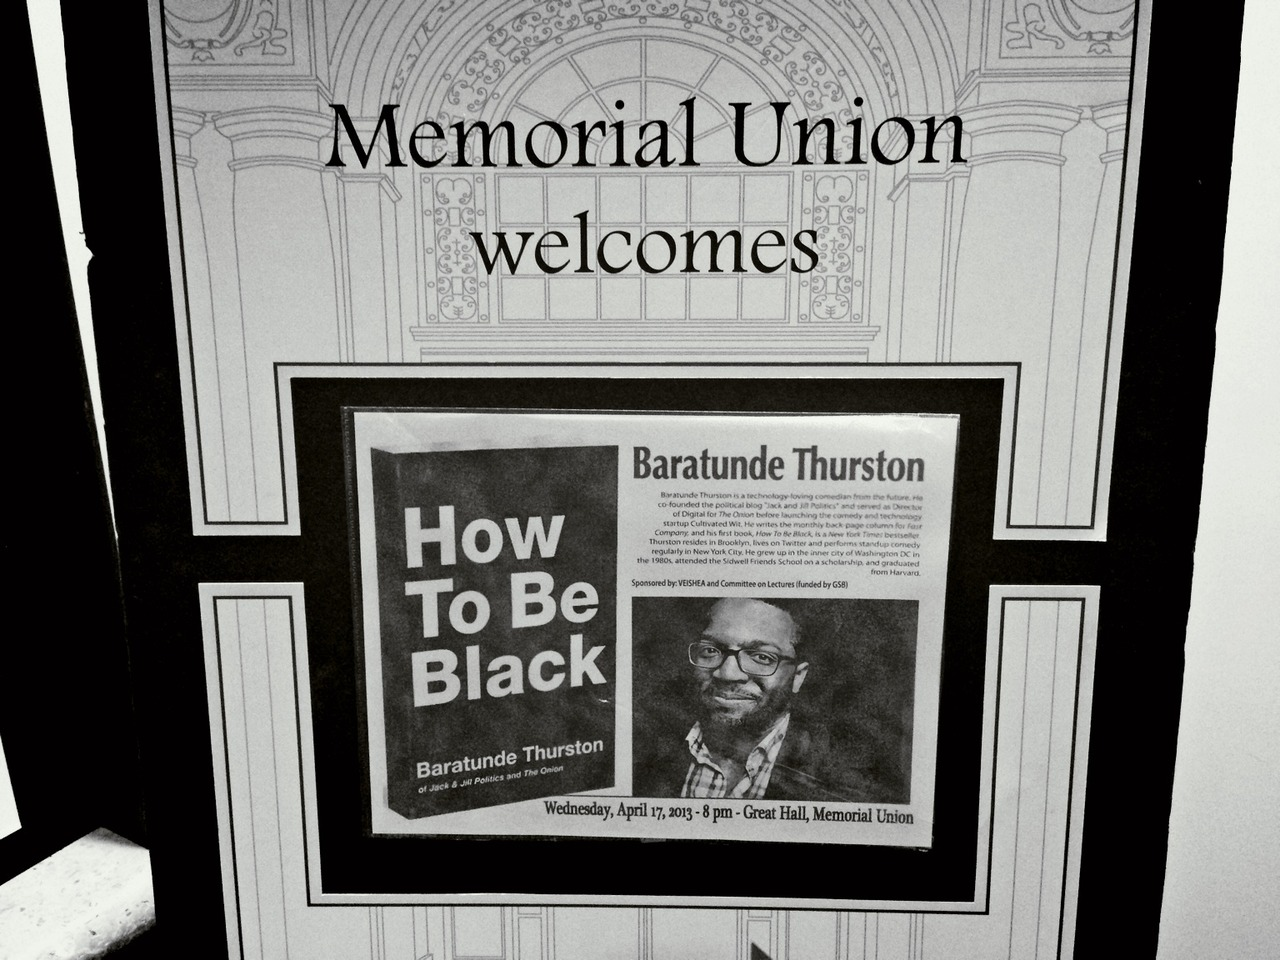 #showtime! #howtobeblack #goldchainsandironchainsarethesame at Iowa State Memorial Union – View on Path.